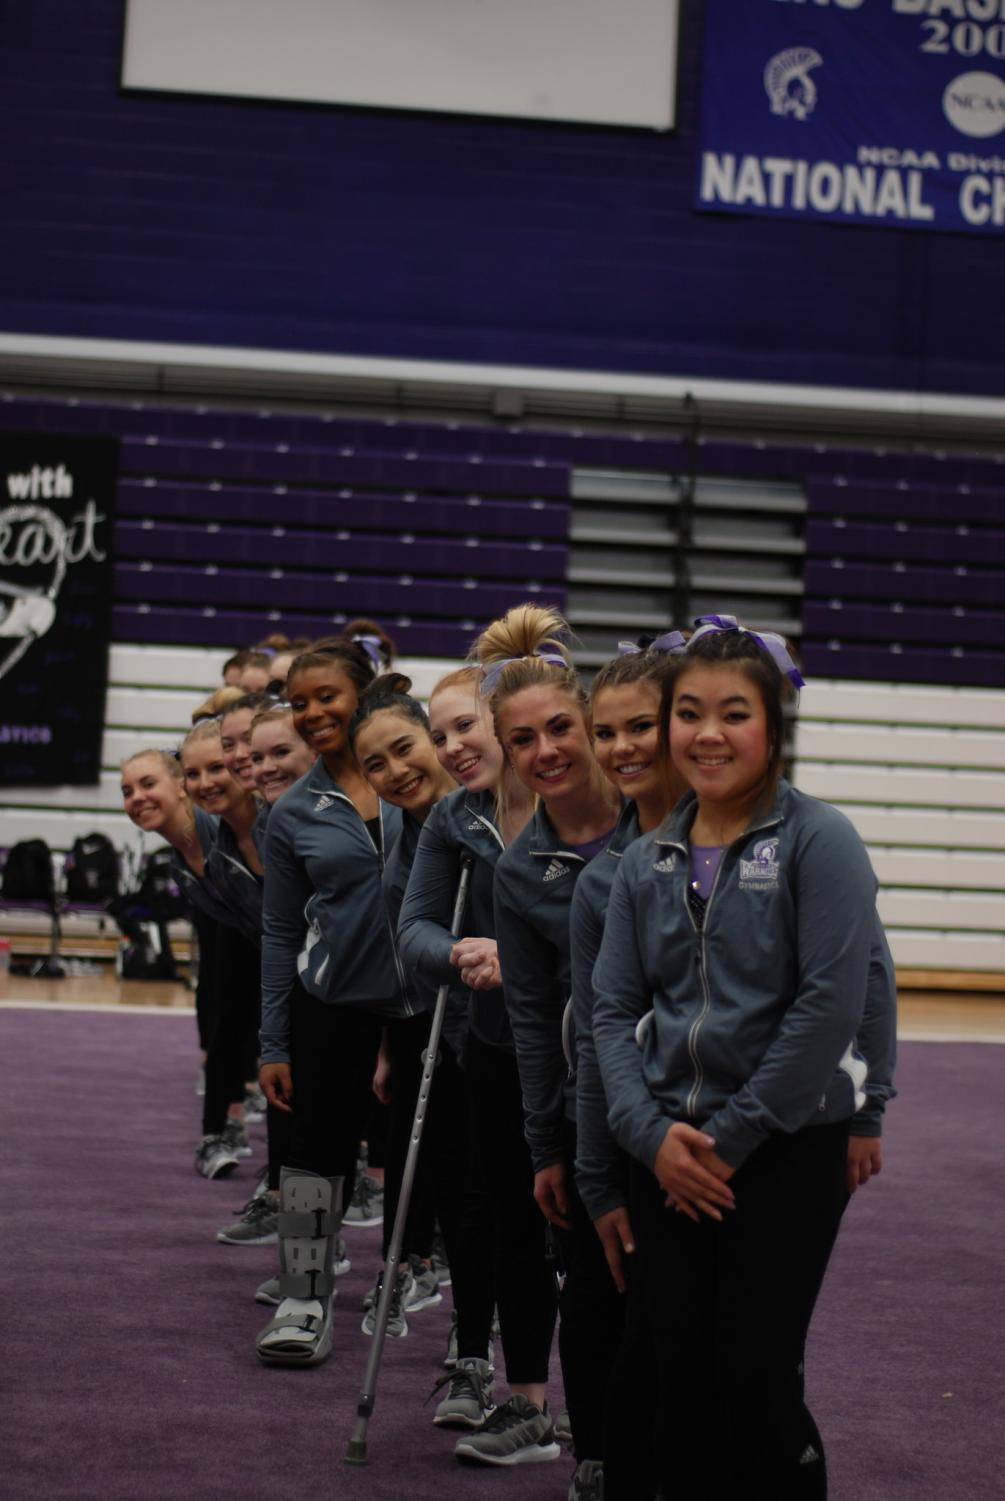 The Winona State Gymnastics Team lines up at the start of a dual meet against Hamline University and the University of Wisconsin Whitewater last Friday in McCown Gymnasium. This meet was also senior night where the team honored seniors Eboni Jackson, Katie Pipp, Gianna Scala, Katie Carling and Emily Woitchek.